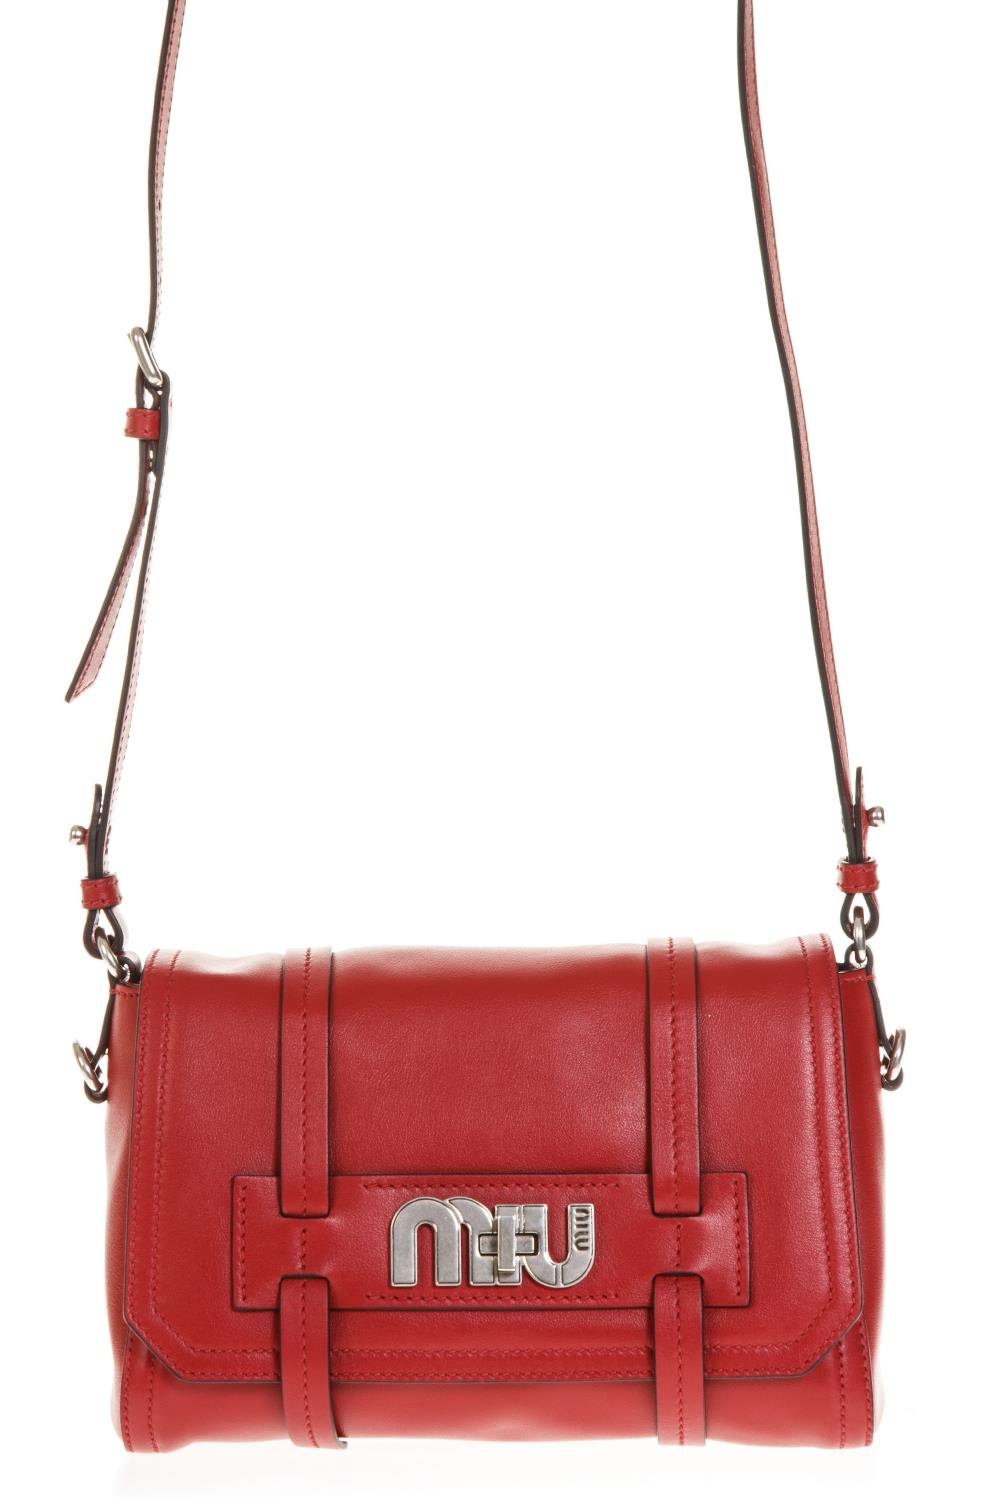 RED LEATHER SHOULDER BAG FW 2018 - MIU MIU - Boutique Galiano b08849300f705